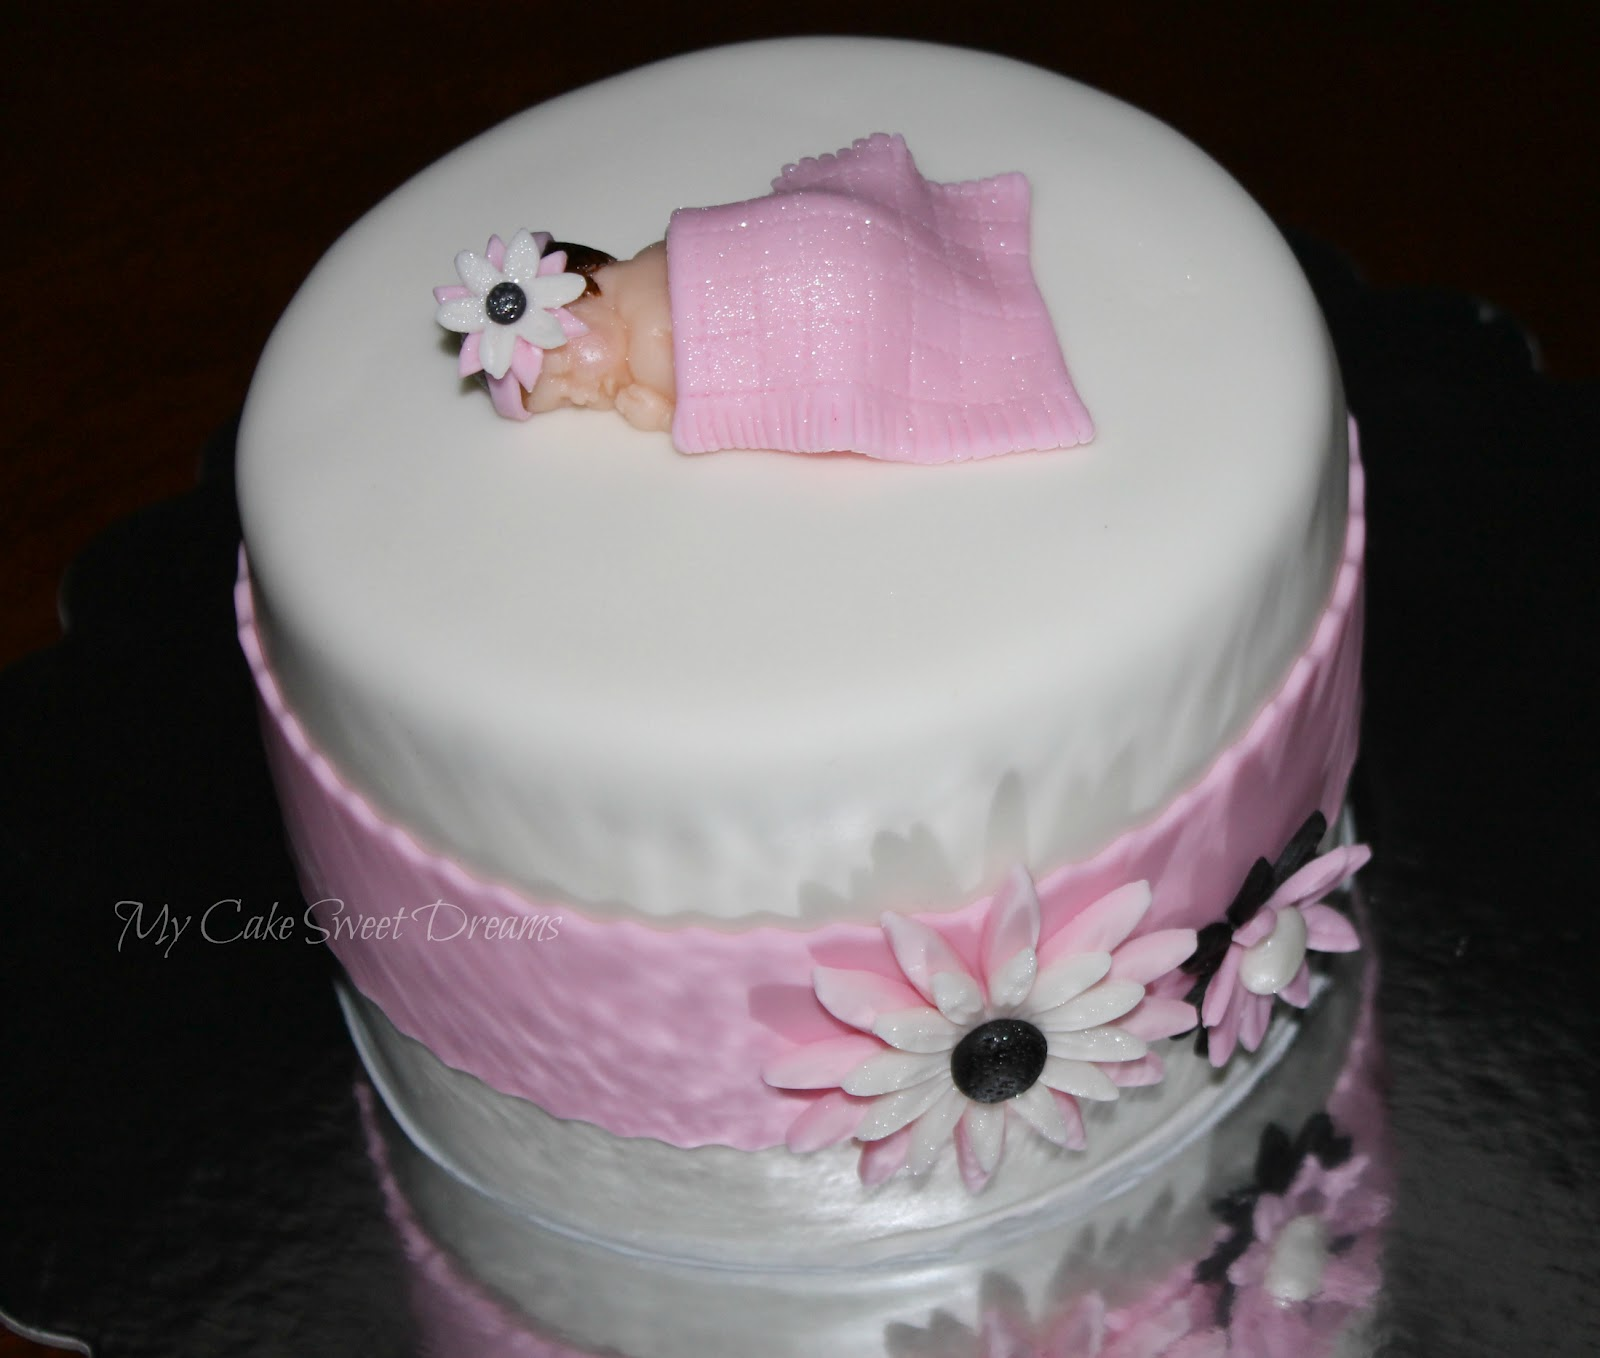 My cake sweet dreams baby girl shower cake and cupcakes for Baby shower cake decoration idea